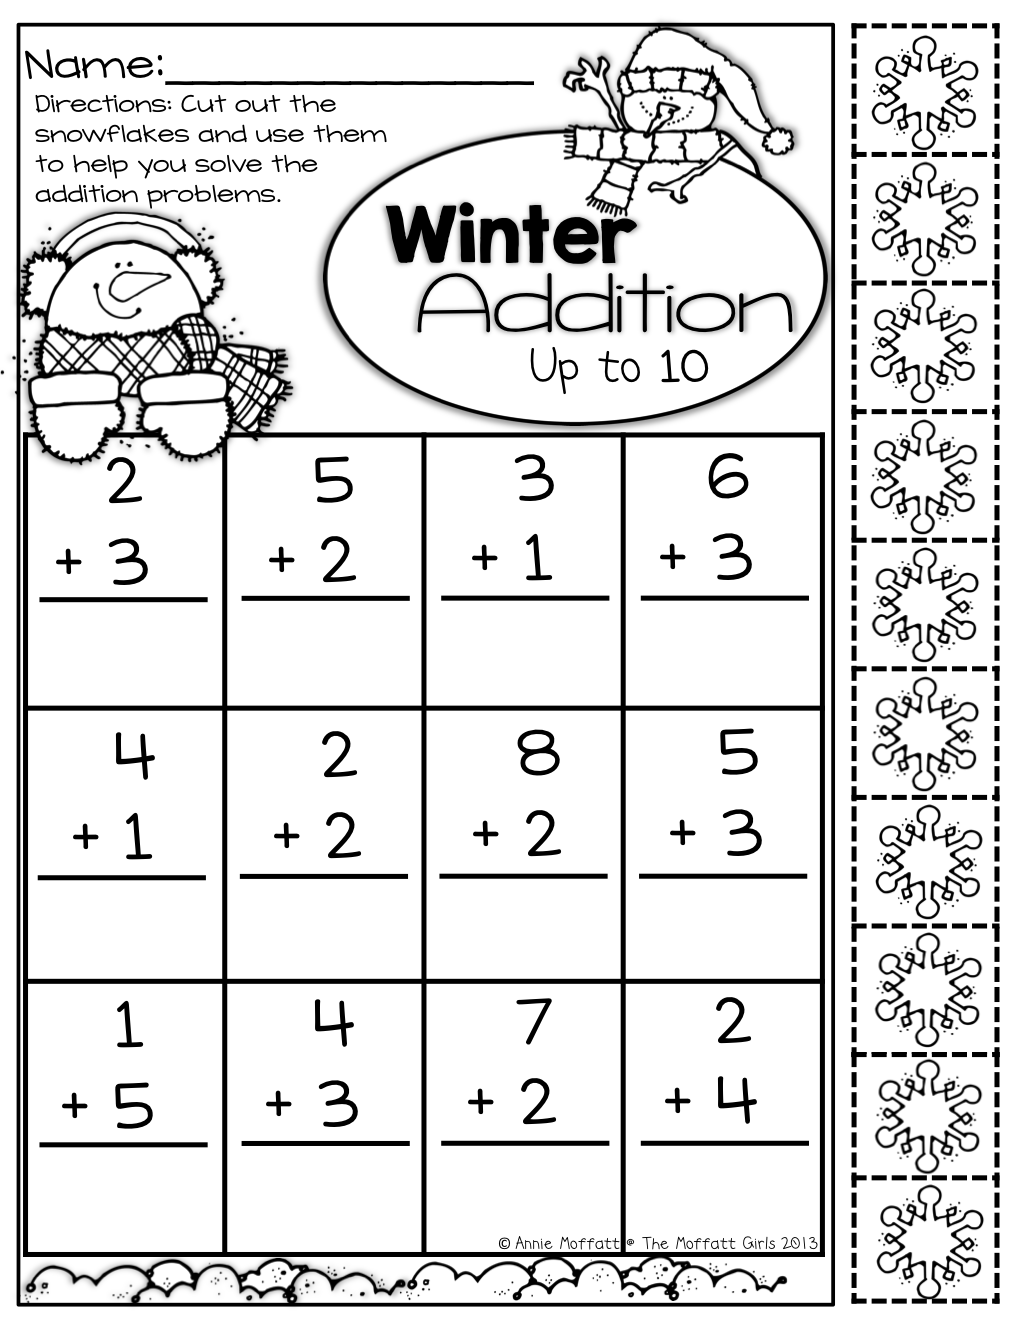 Simple Addition Up To 10 With Built In Snowflake Manipulatives